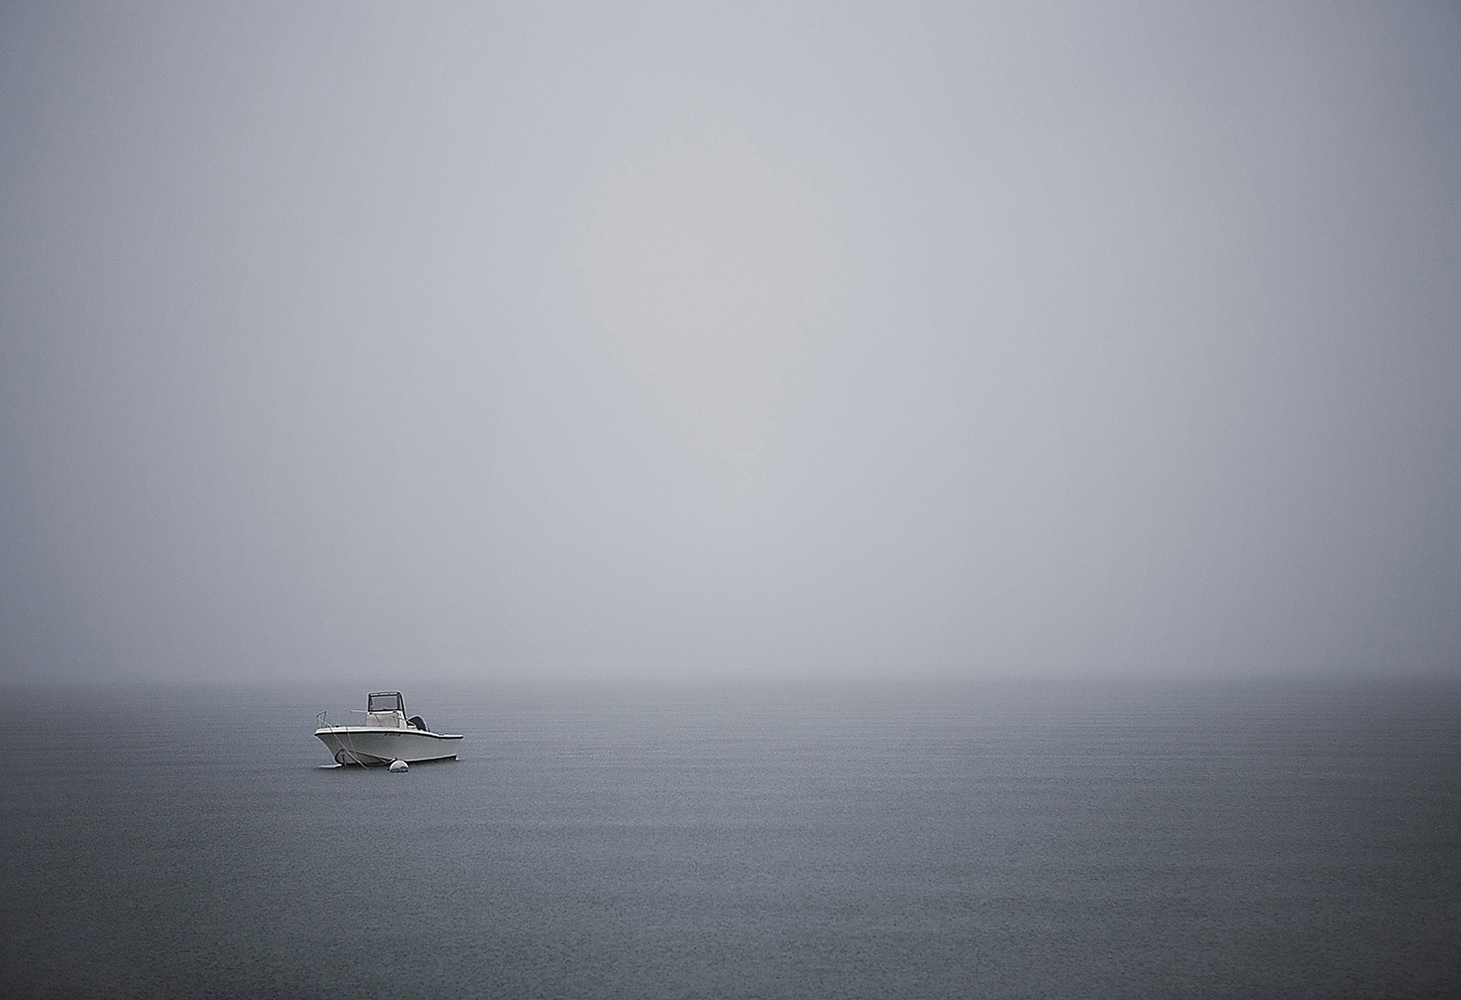 Landscape Photography small boat in ocean